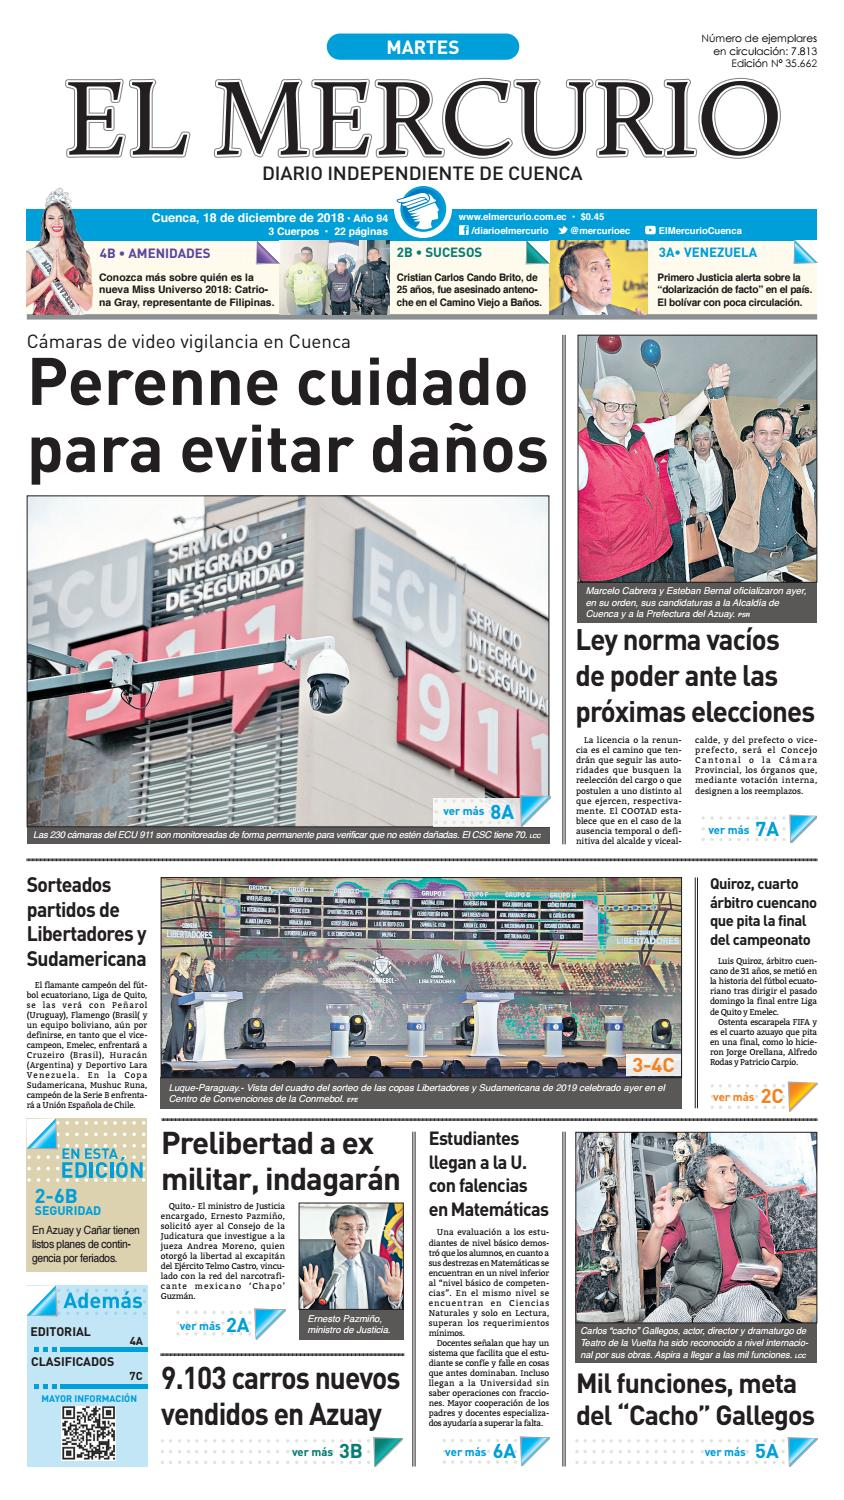 super popular 0aff7 95001 Hemeroteca-18-12-2018 by Diario El Mercurio Cuenca - issuu